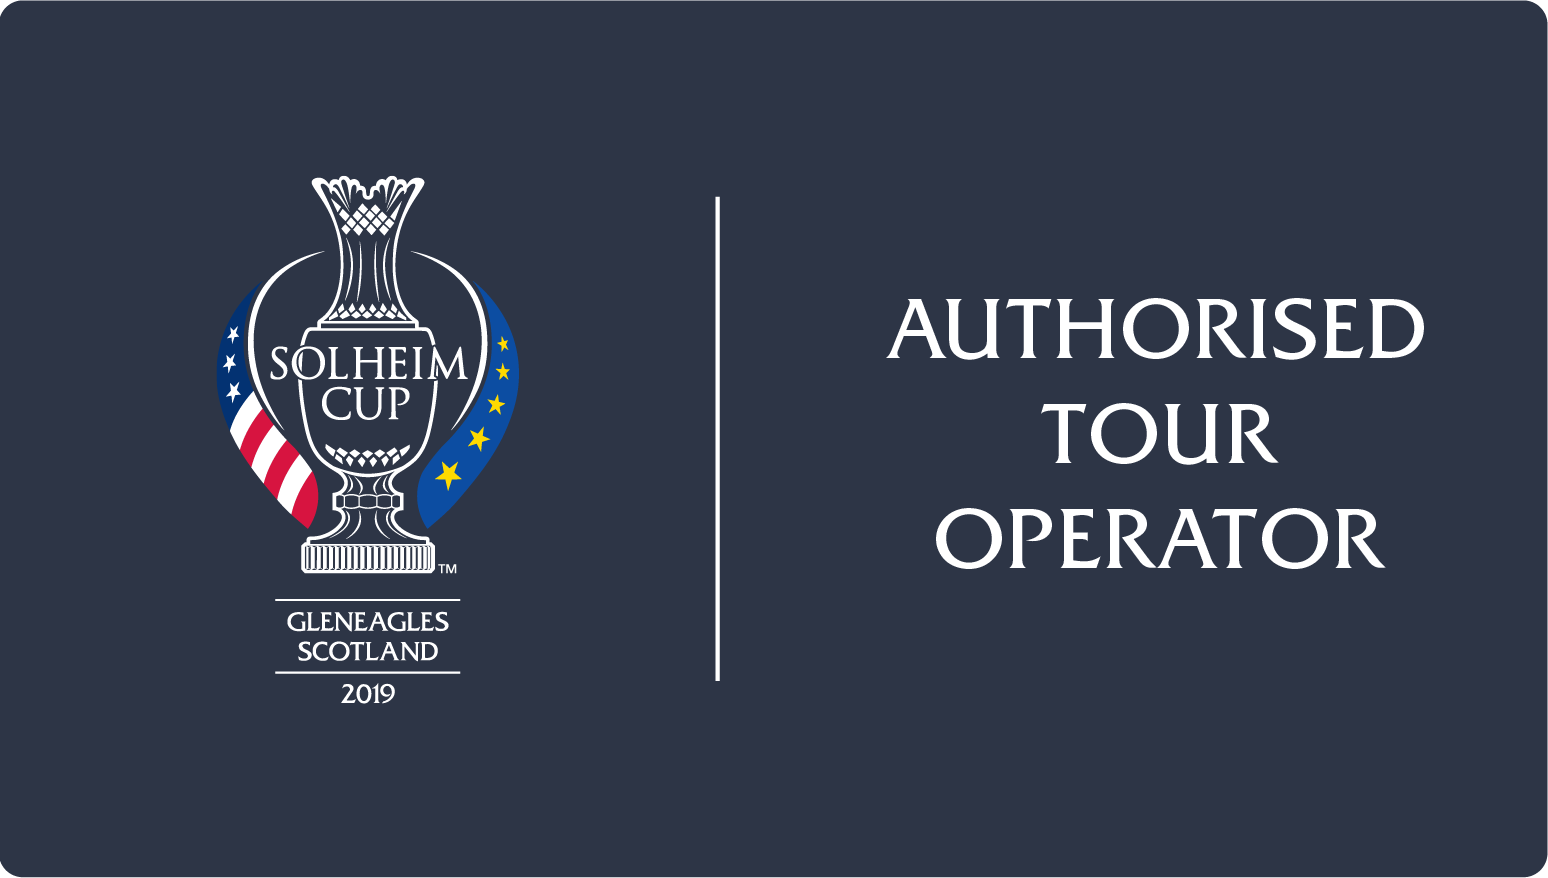 Authorised Tour Operator for The Solheim Cup 2019